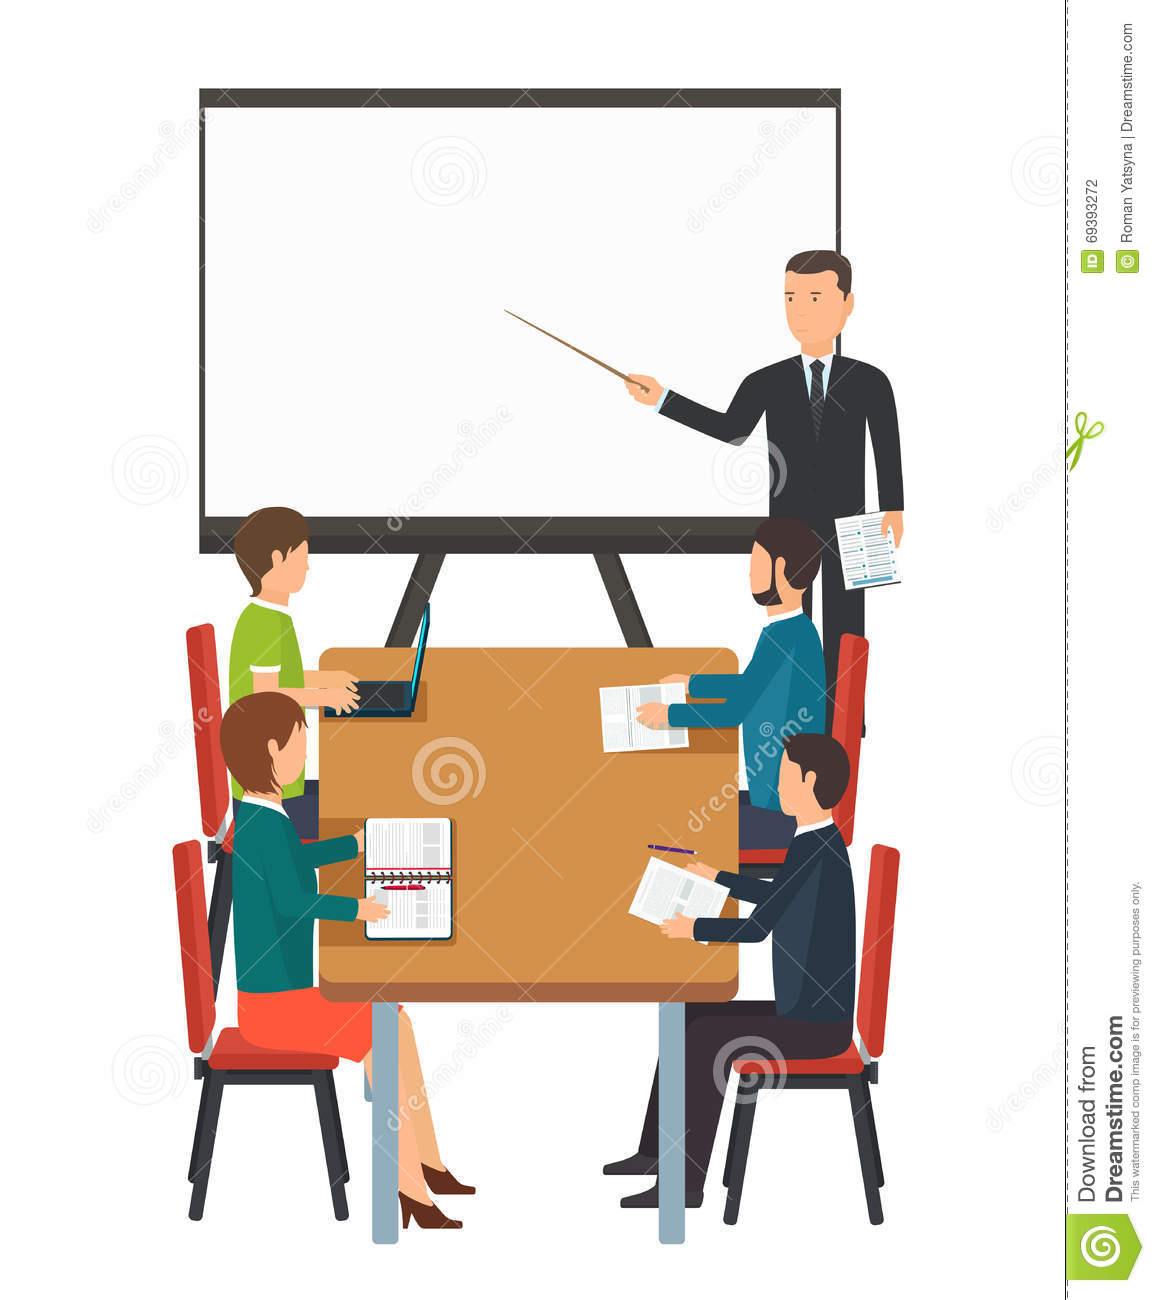 Collaborative Classroom Presentation ~ Business presentation for group of people stock vector